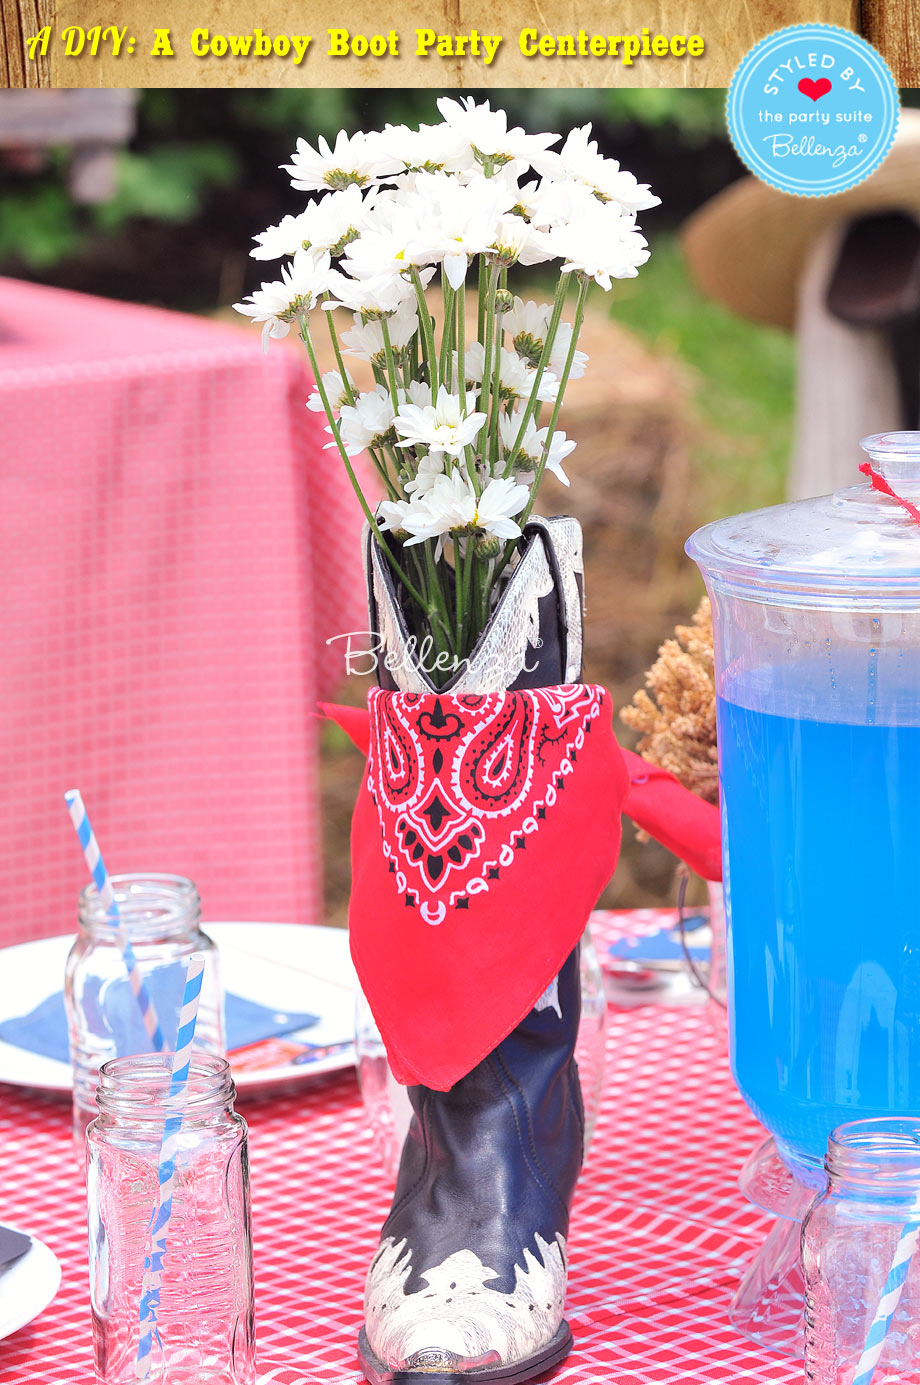 Easy DIY: Cowboy Boot Party Centerpiece in Just 5 Steps!